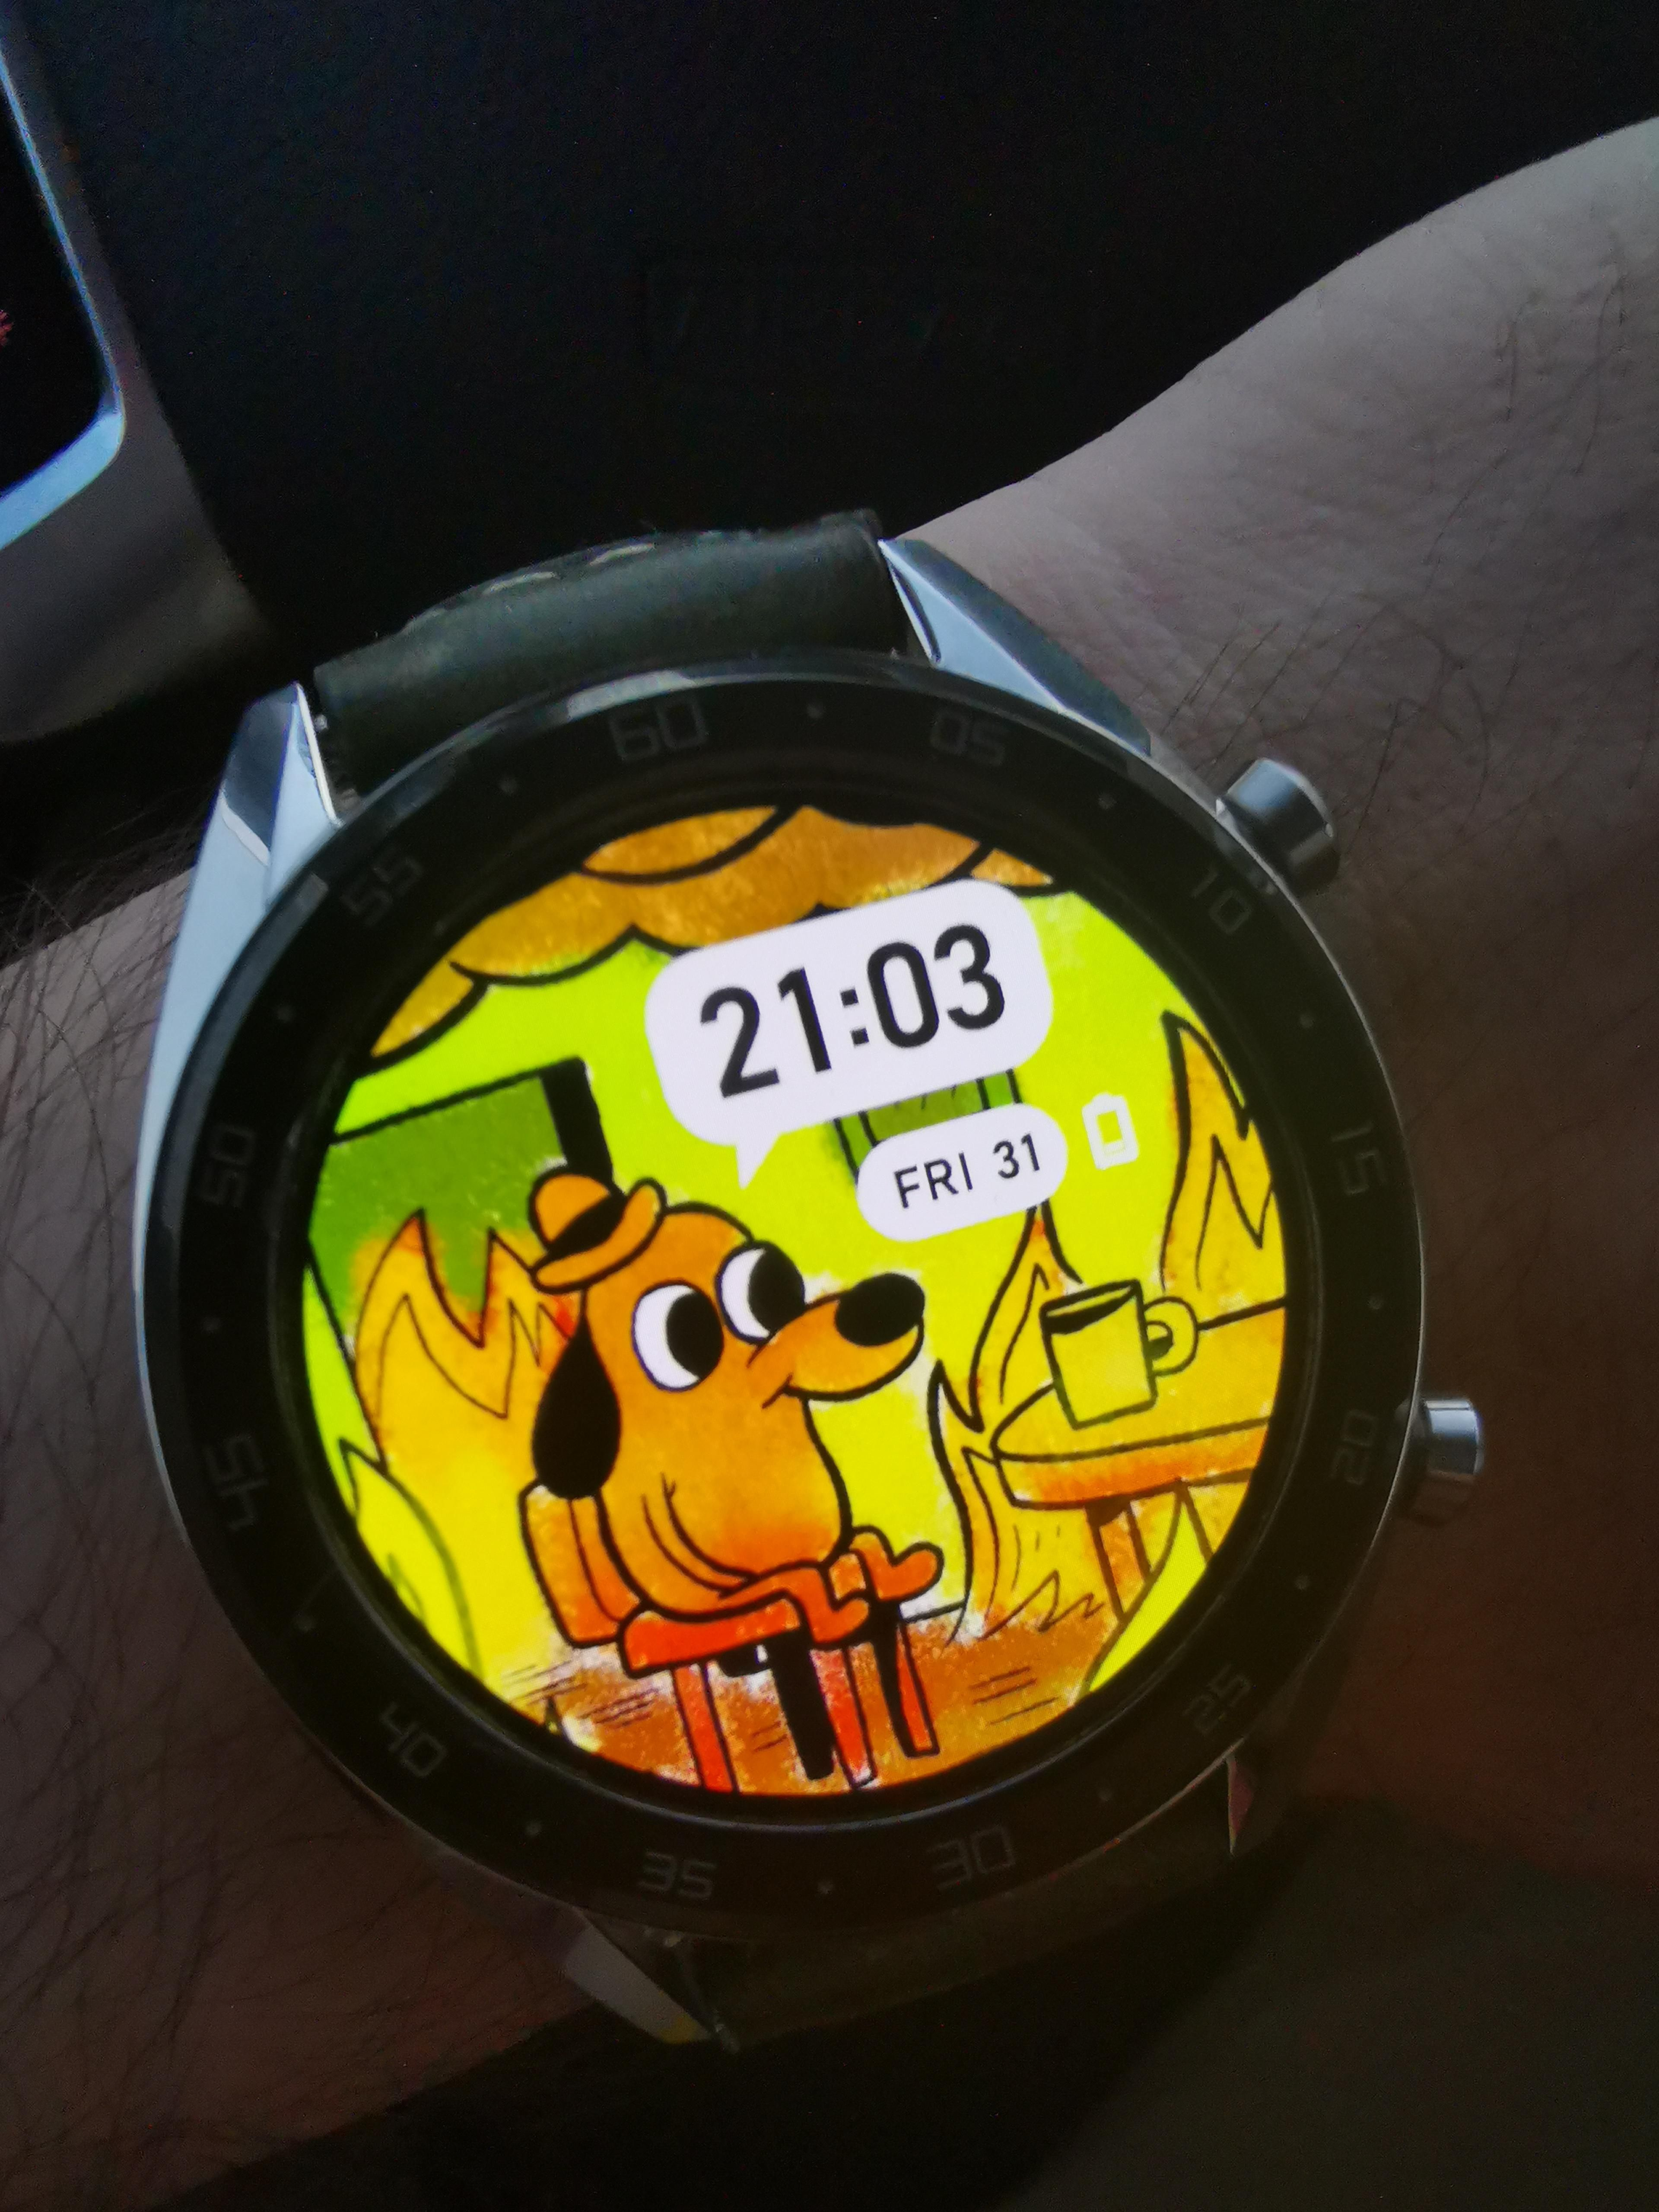 My new watch face.